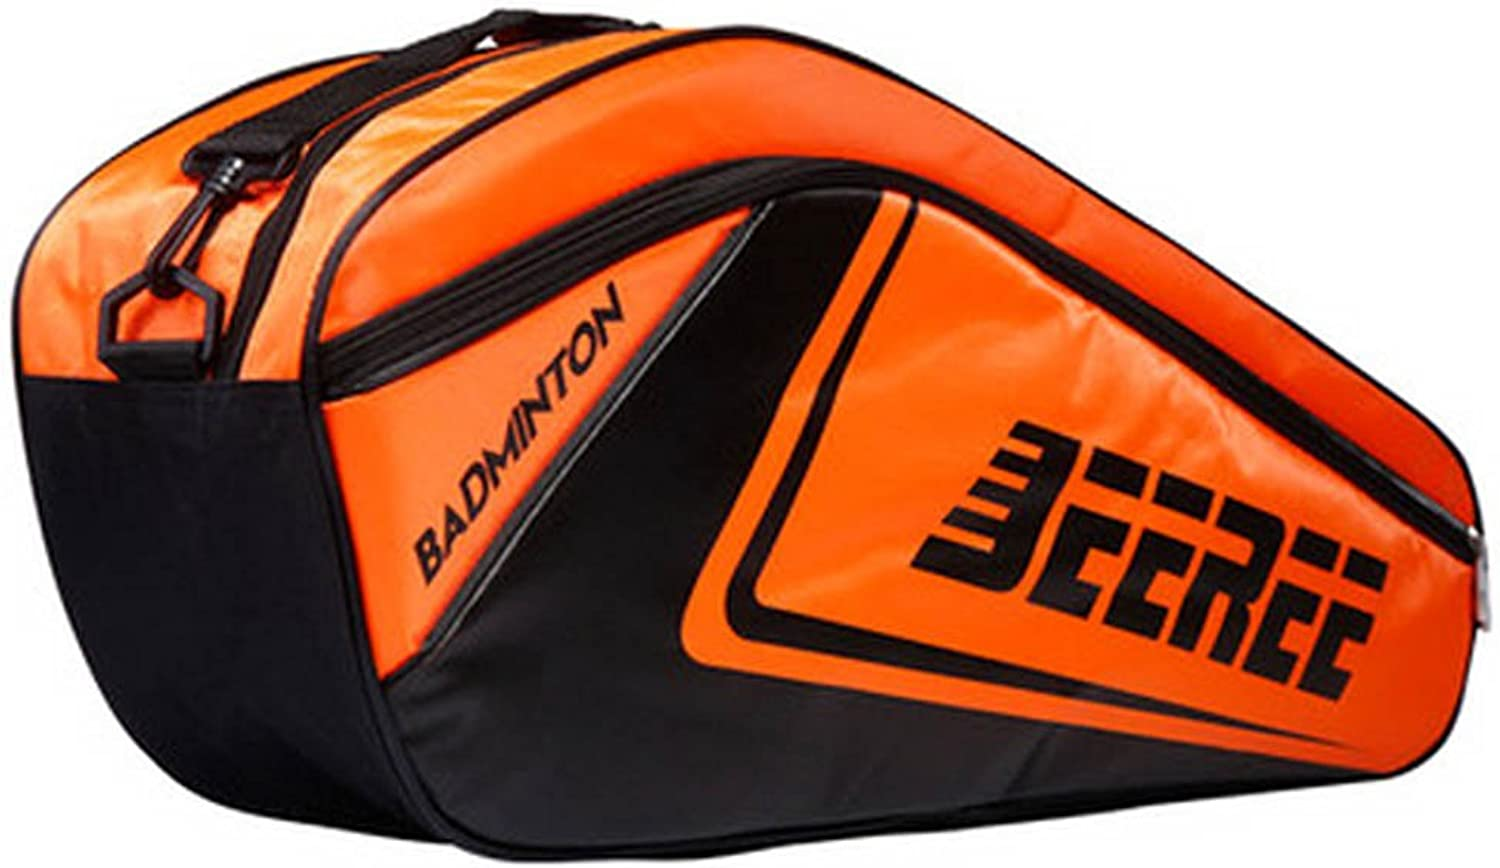 Adjustable Shoulder Strap Badminton Racket Cover Badminton Racket Bag Tennis Bag (6 Racquet), orange